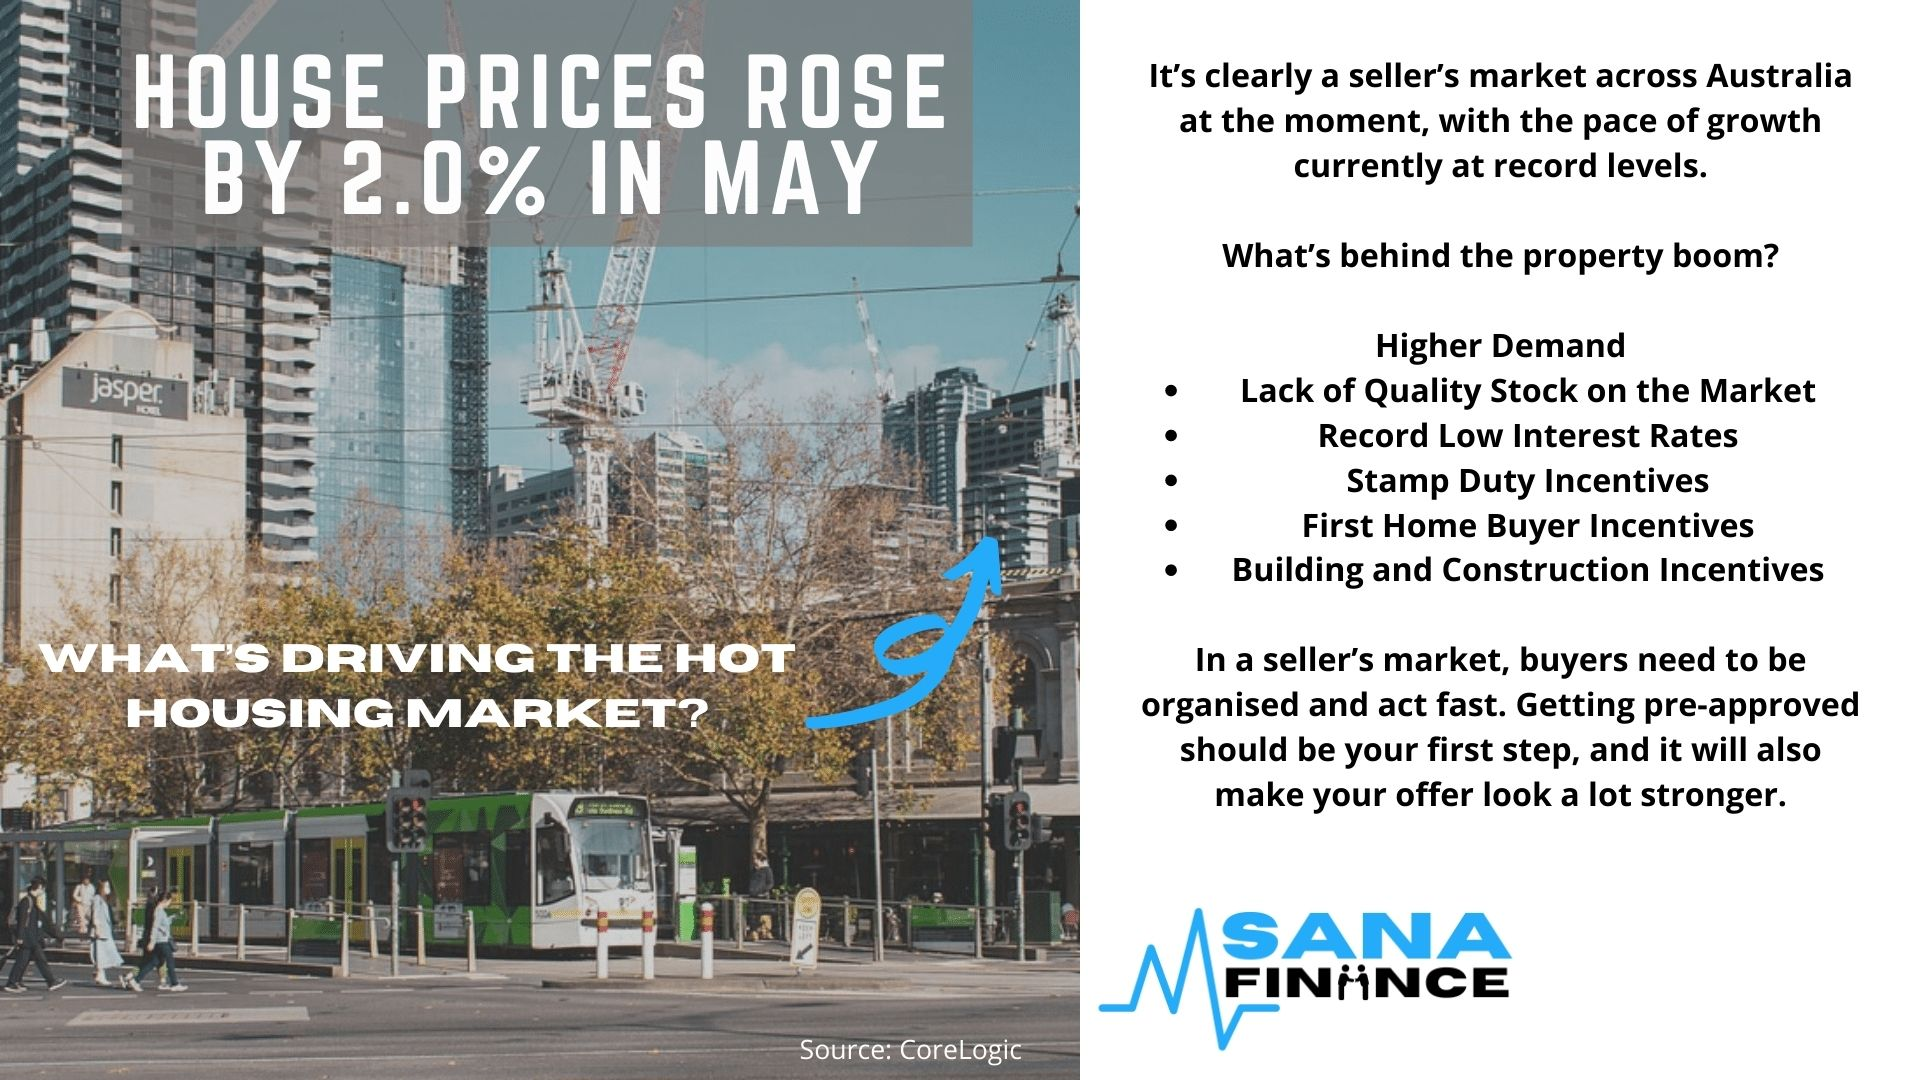 House prices jump in rising market